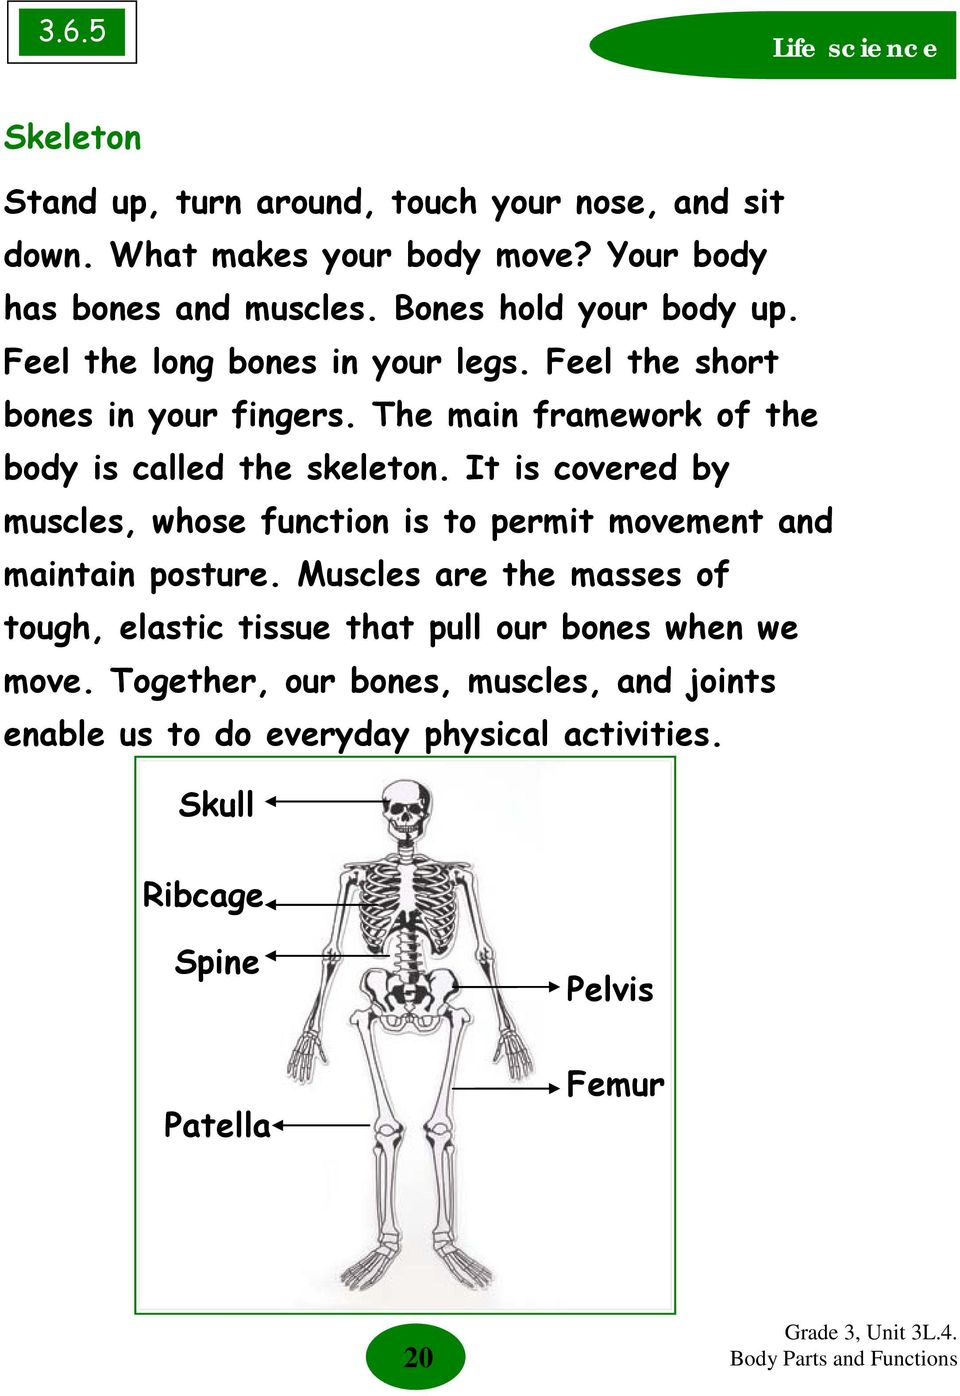 The main framework of the body is called the skeleton. It is covered by muscles, whose function is to permit movement and maintain posture.